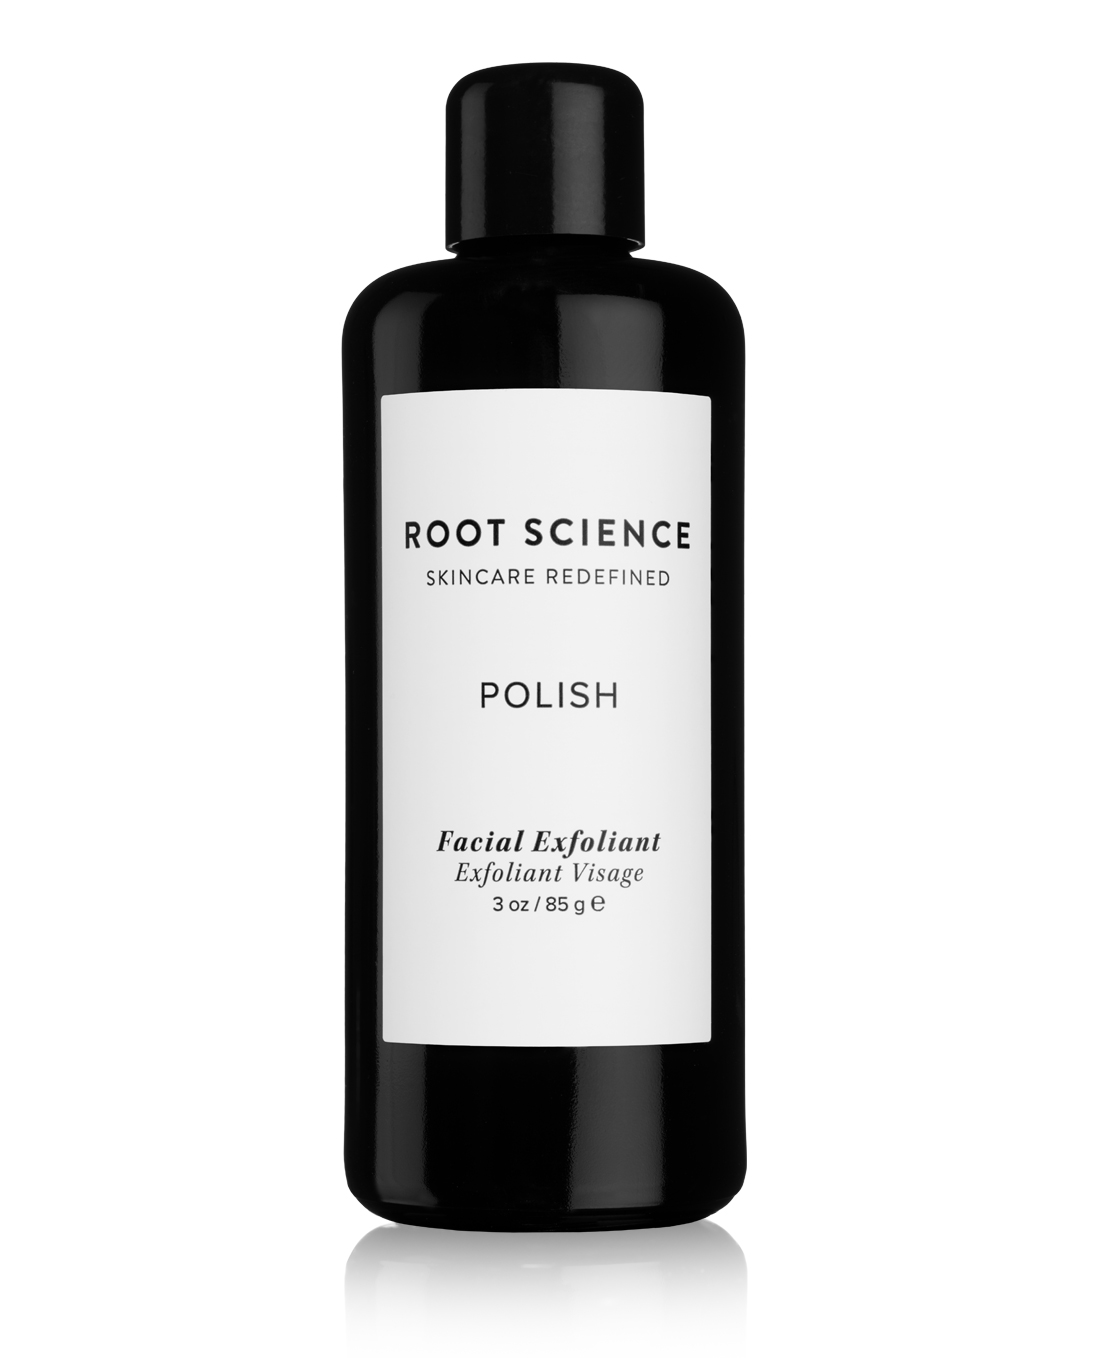 Root Science Polish Facial Exfoliant